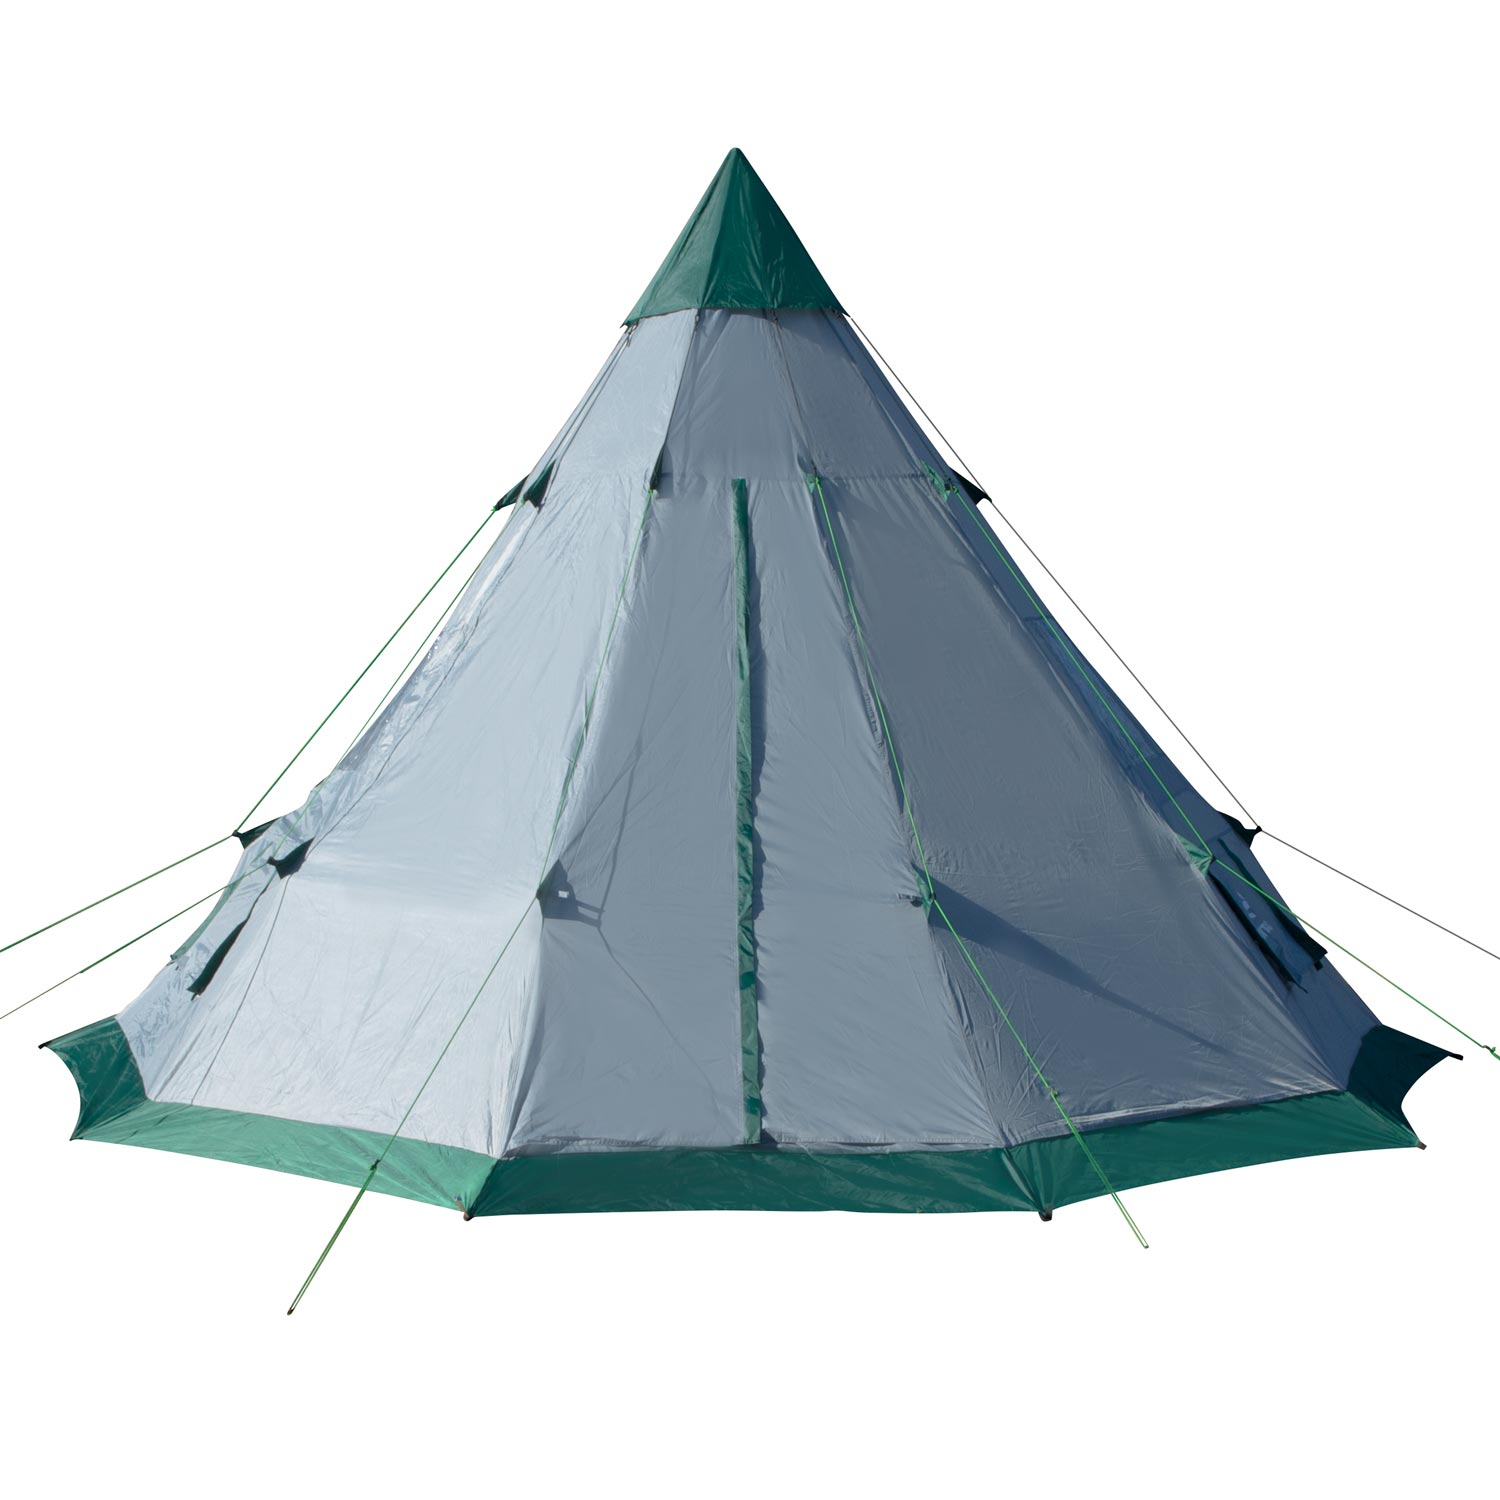 Teepee Tent | 6-7 Person Family Tent | Quick Setup